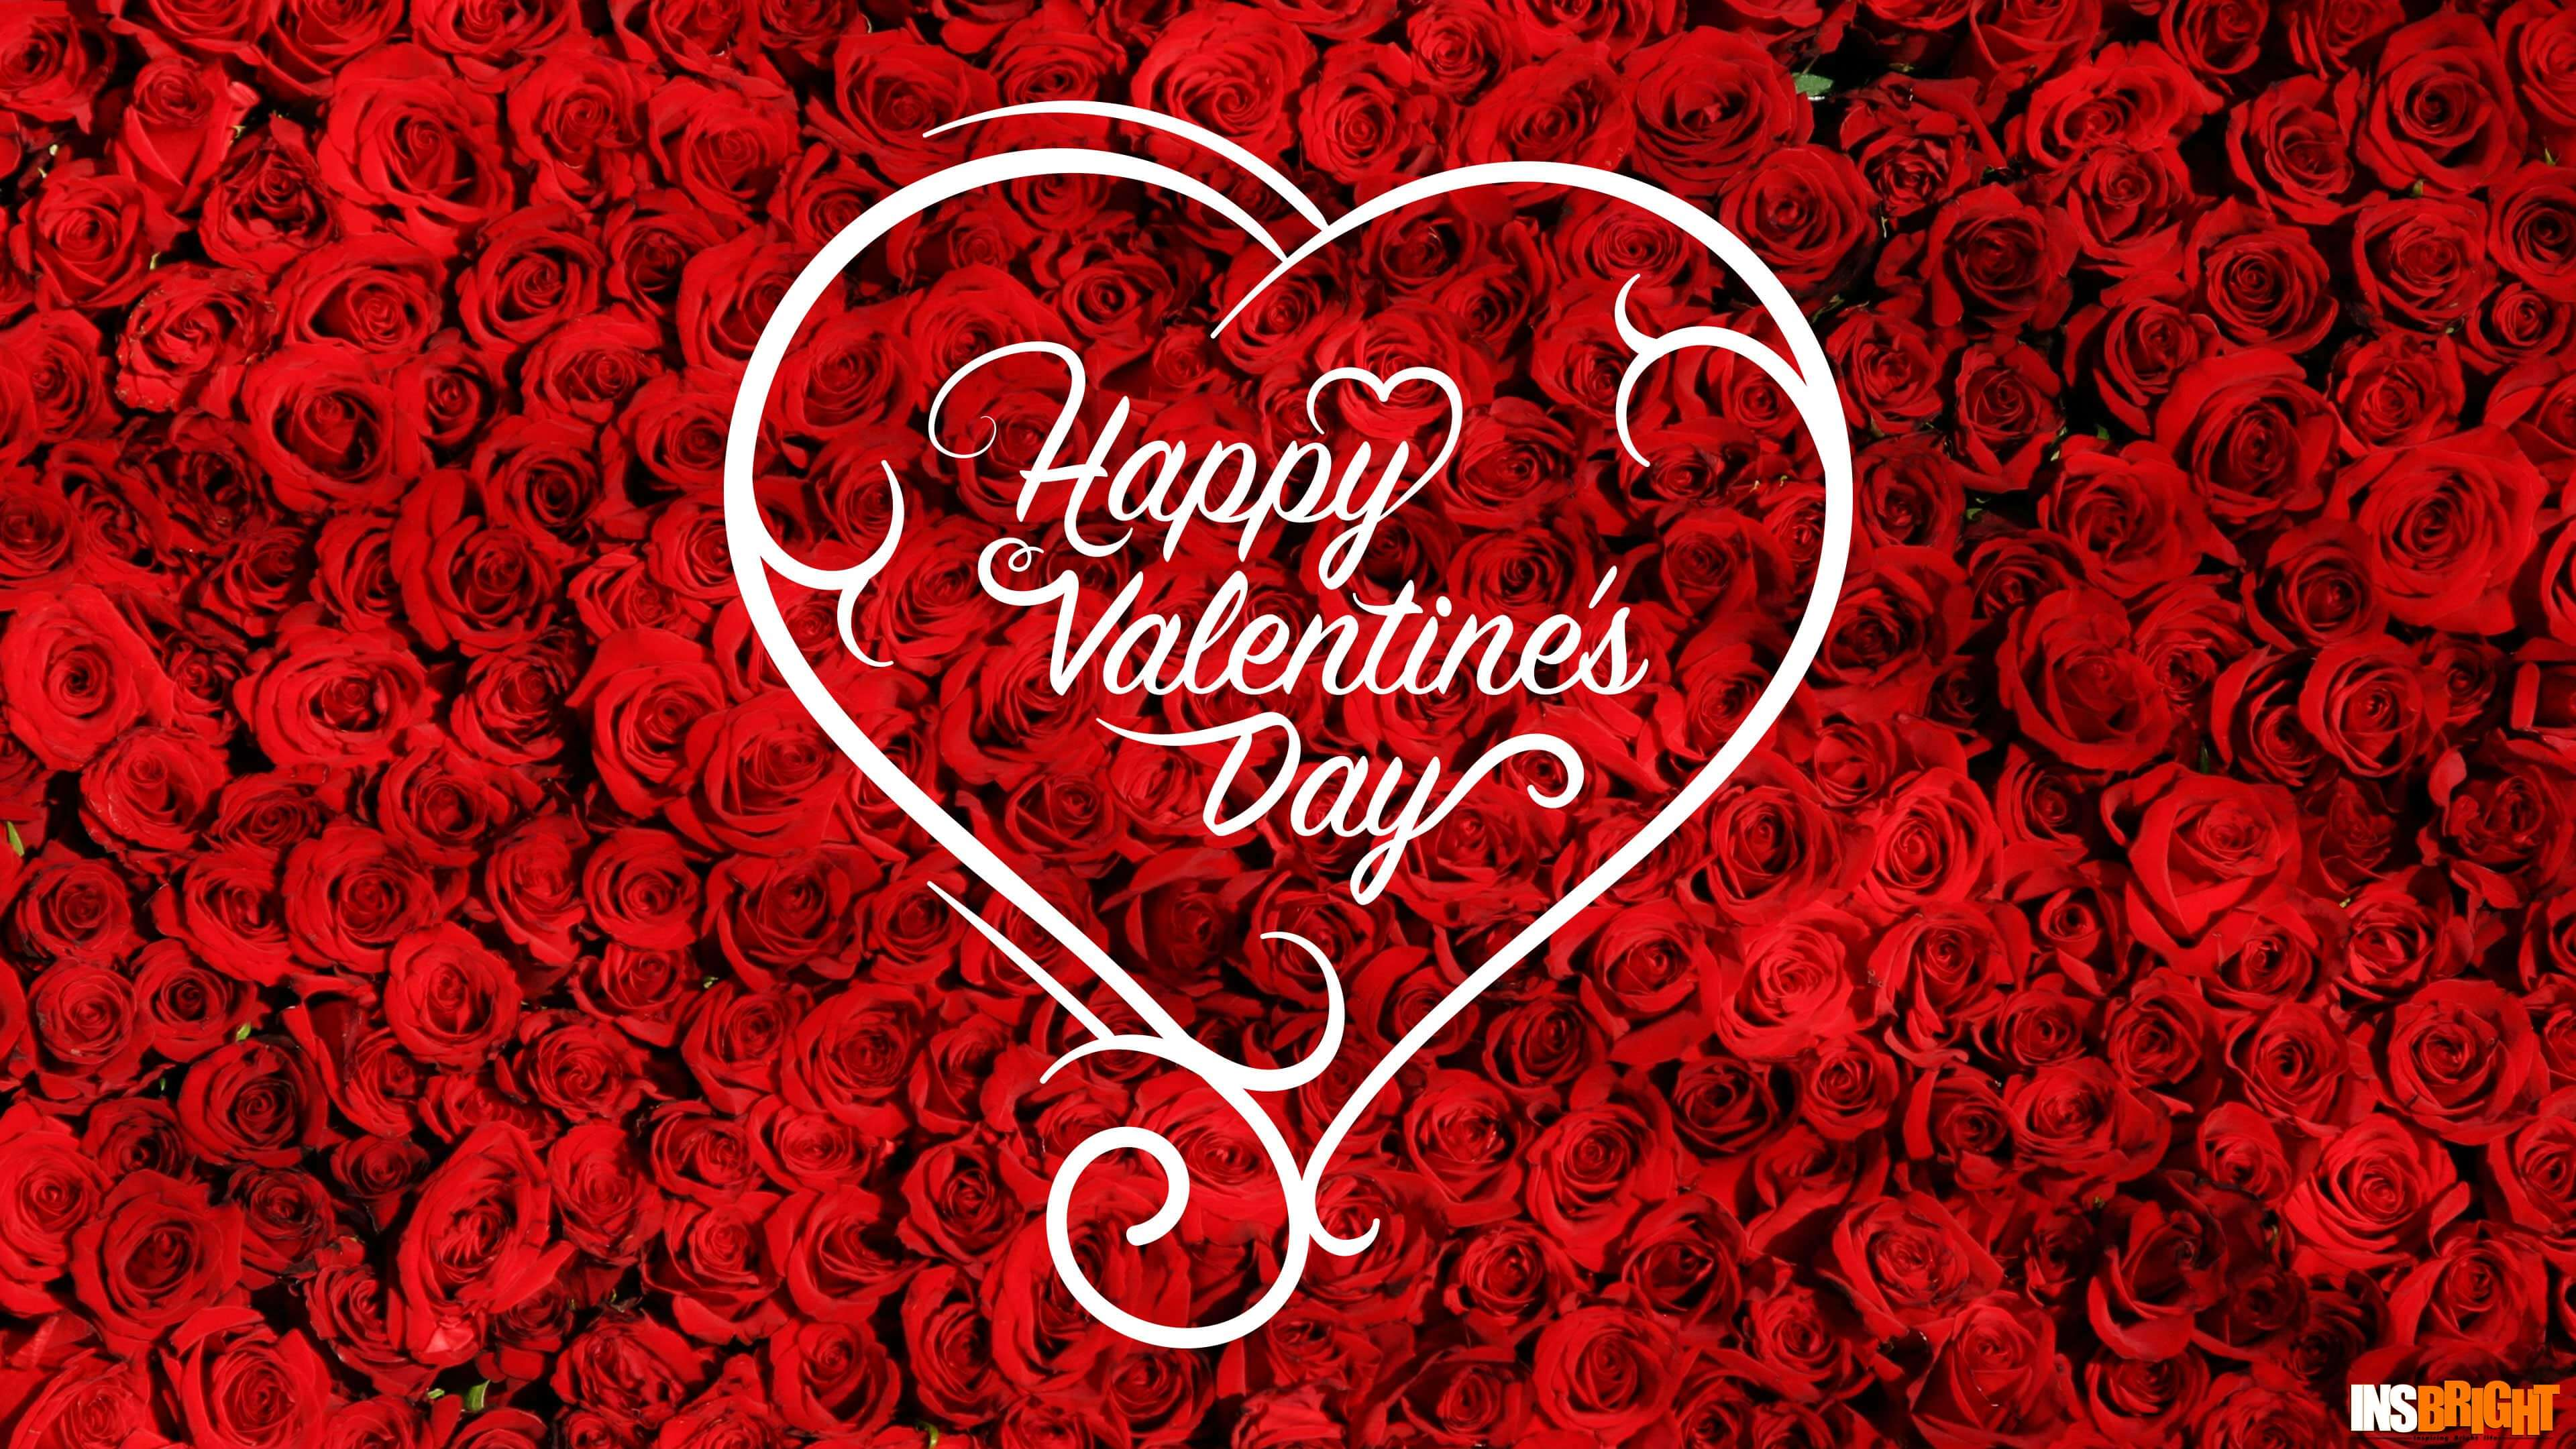 happy valentines day images, pics, photos & wallpapers - dontgetserious